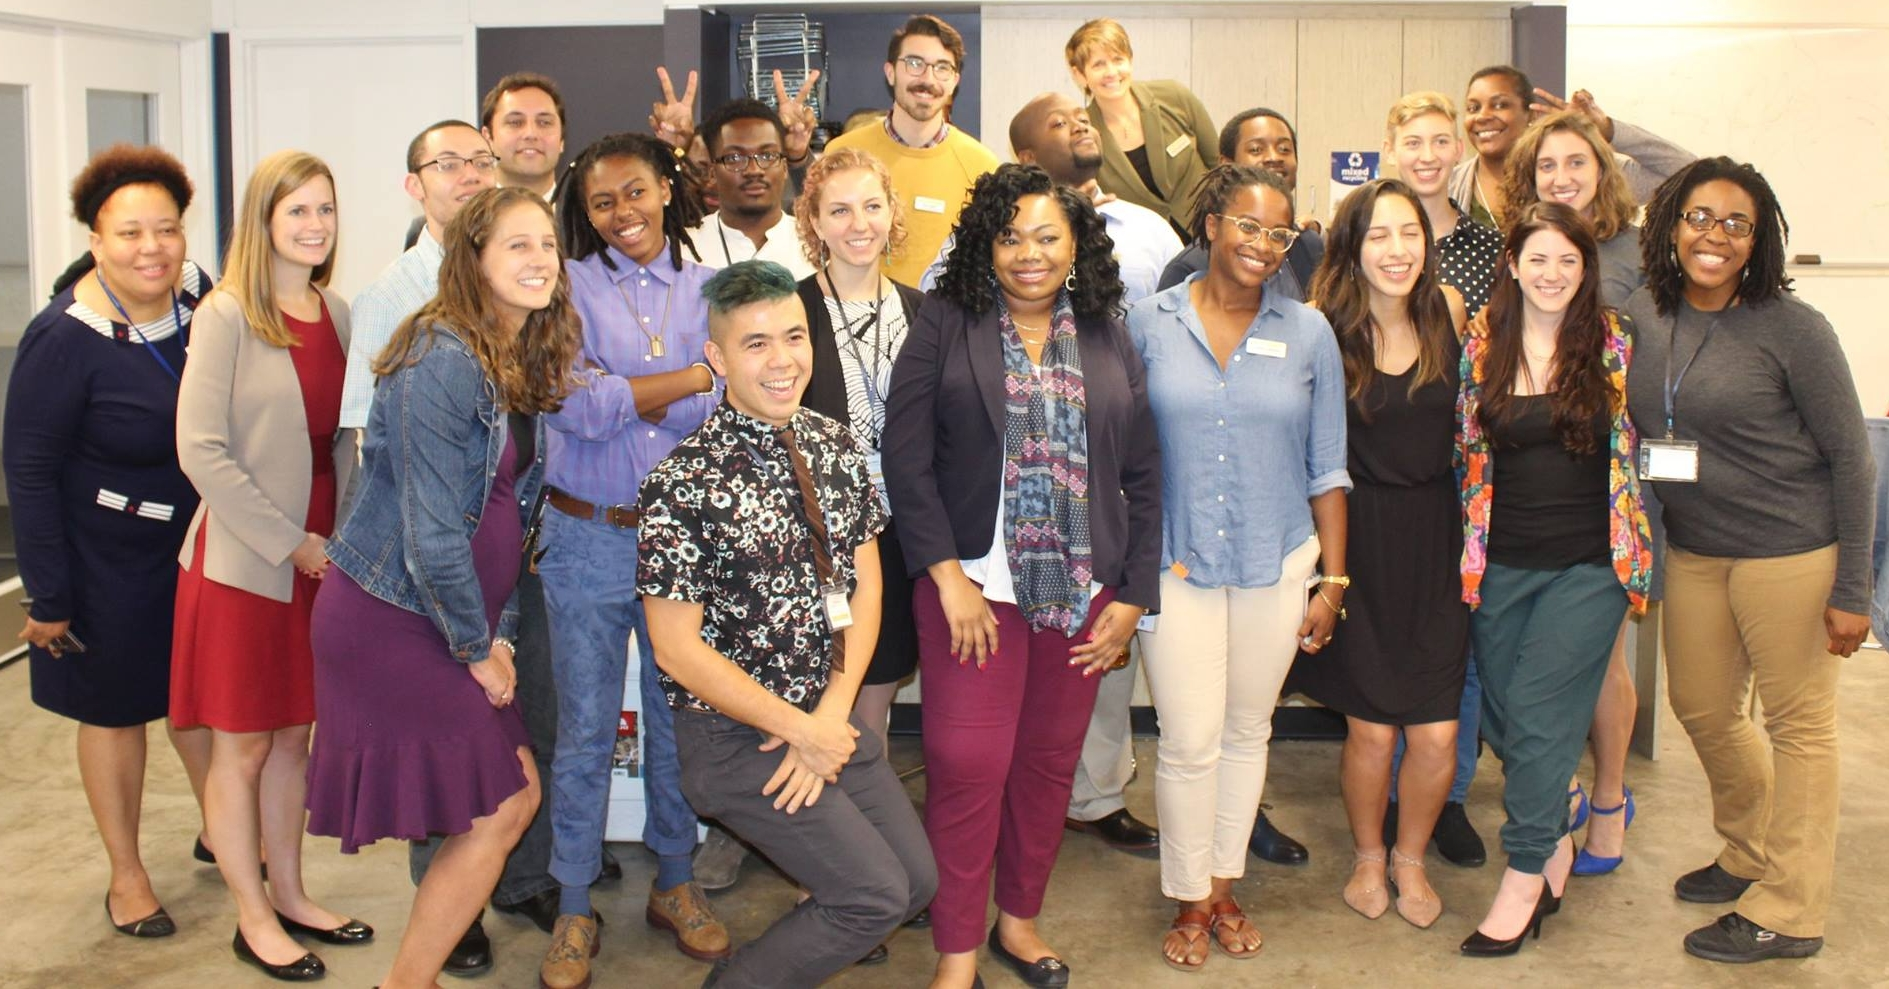 Current Fellows (Cohort 4, 2017-18) and staff at welcome dinner following orientation.